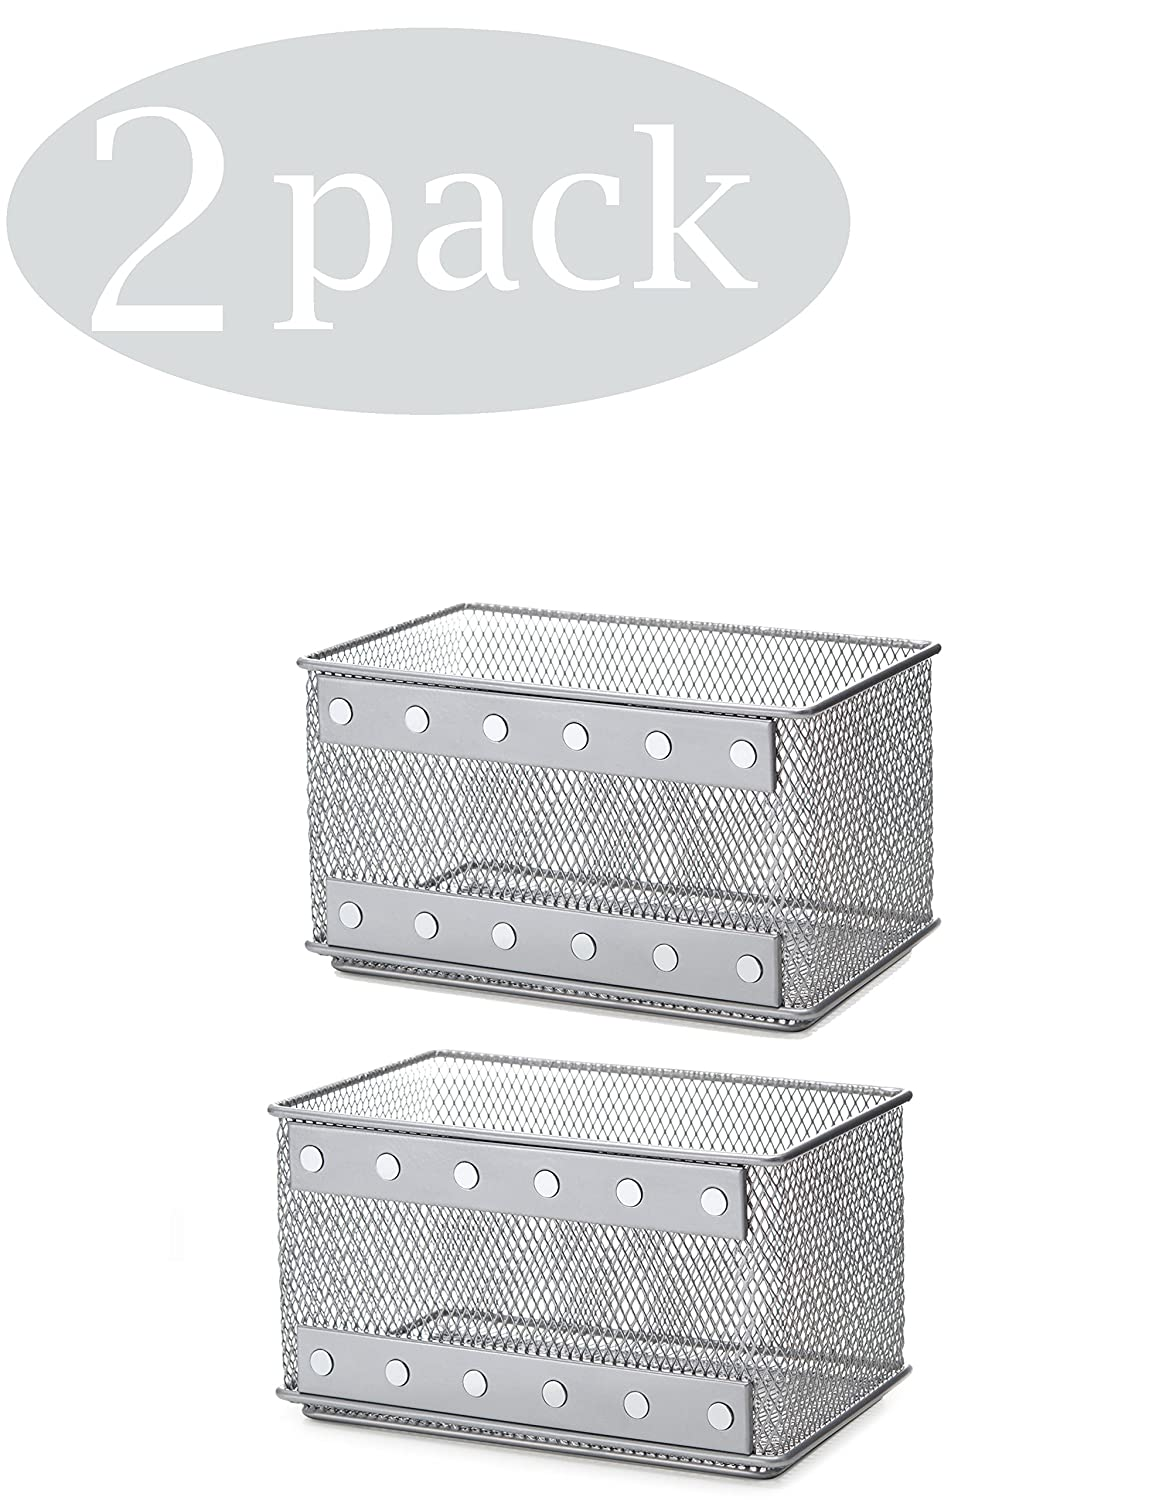 Ybmhome Wire Mesh Magnetic Storage Basket, Trash Caddy, Container, Desk Tray, Office Supply Organizer Silver for Refrigerator/Microwave Oven or Magnetic Surface in Kitchen or Office 2457-2 (2, Medium)